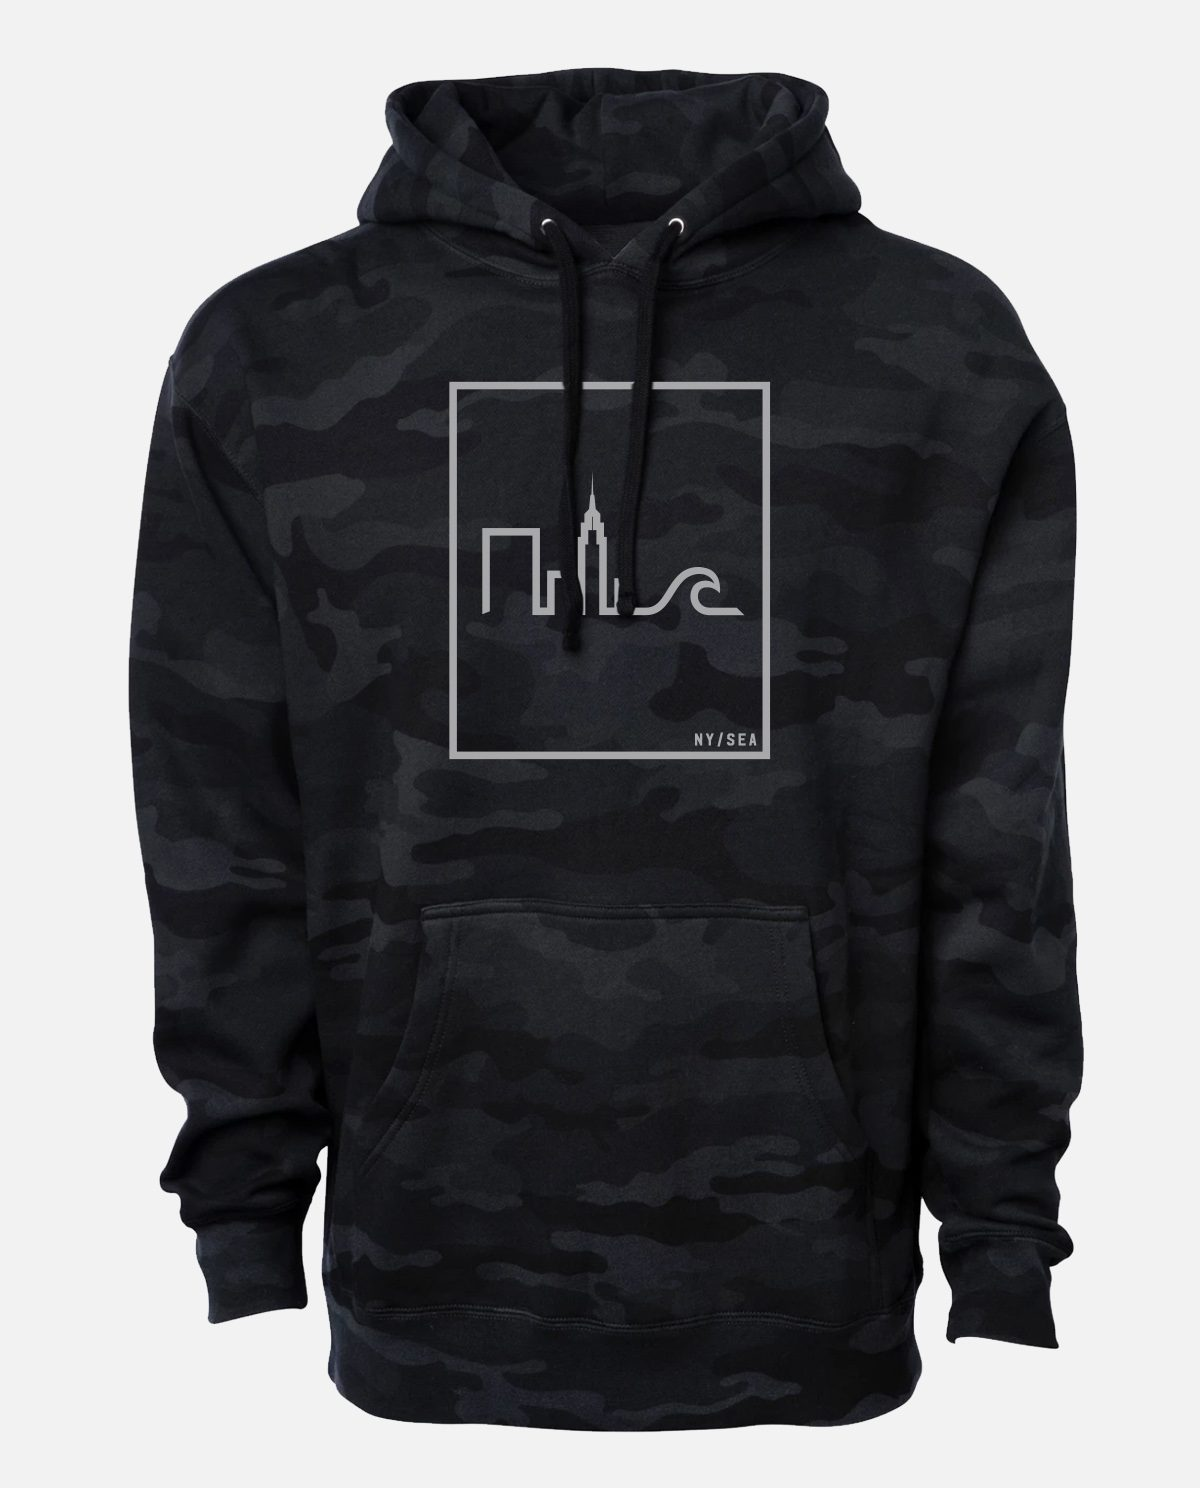 nysea-20wintercollection_skyline-sweatshirt-camo